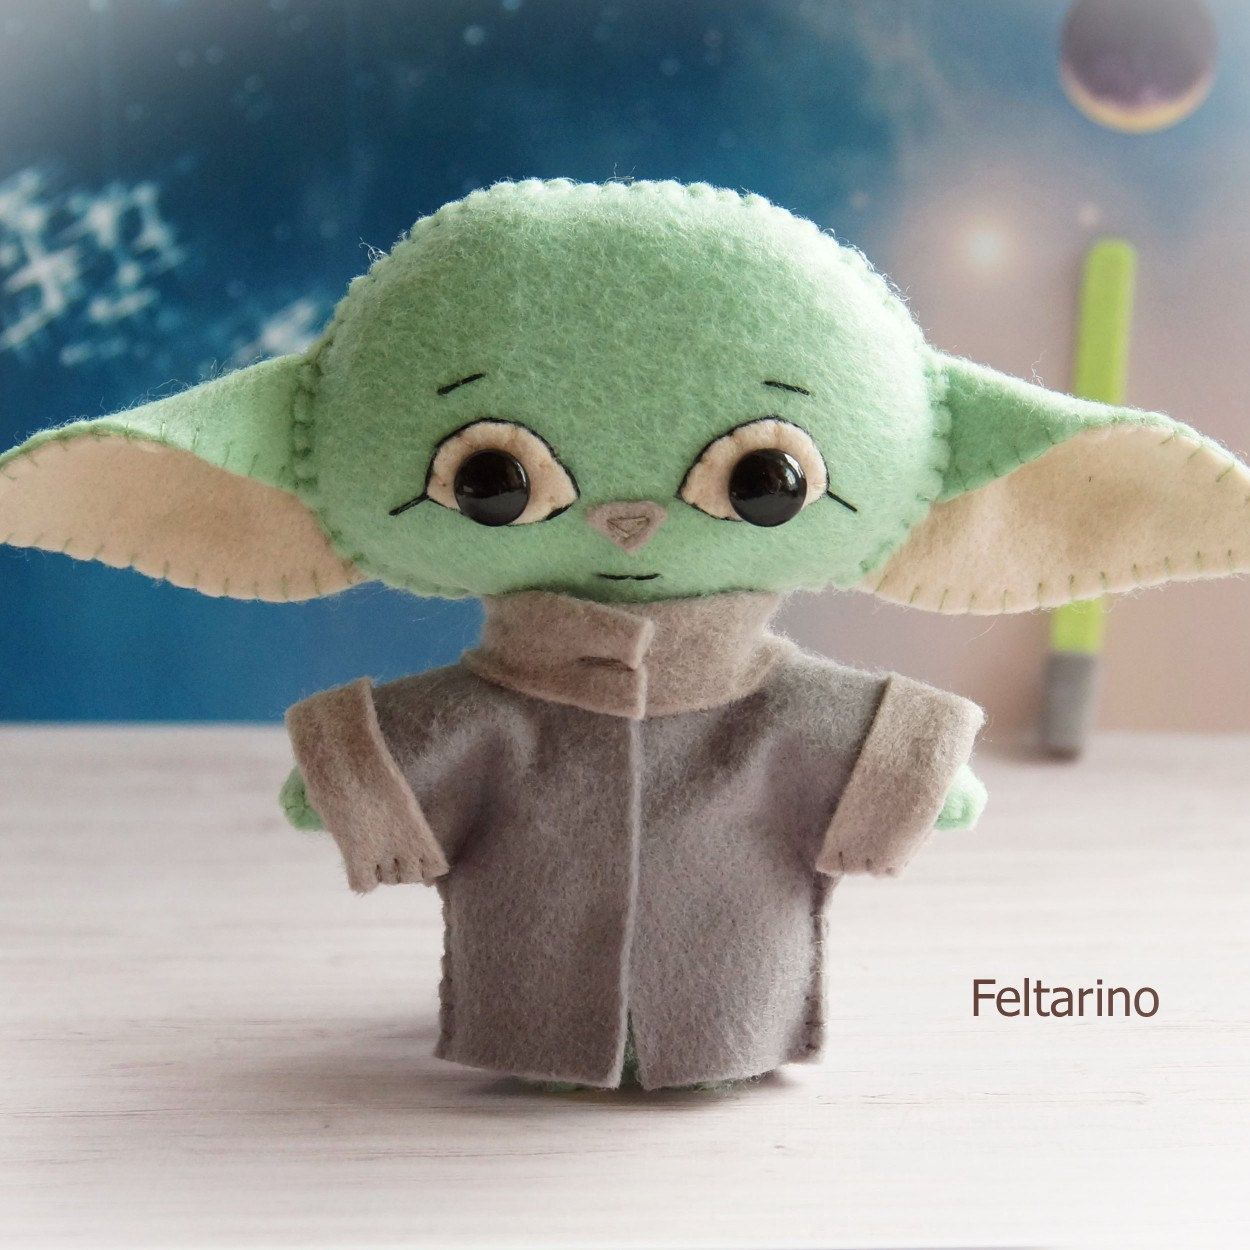 Baby Yoda Me Is House Need Me Animal Crafts For Kids Felt Toys Felt Baby